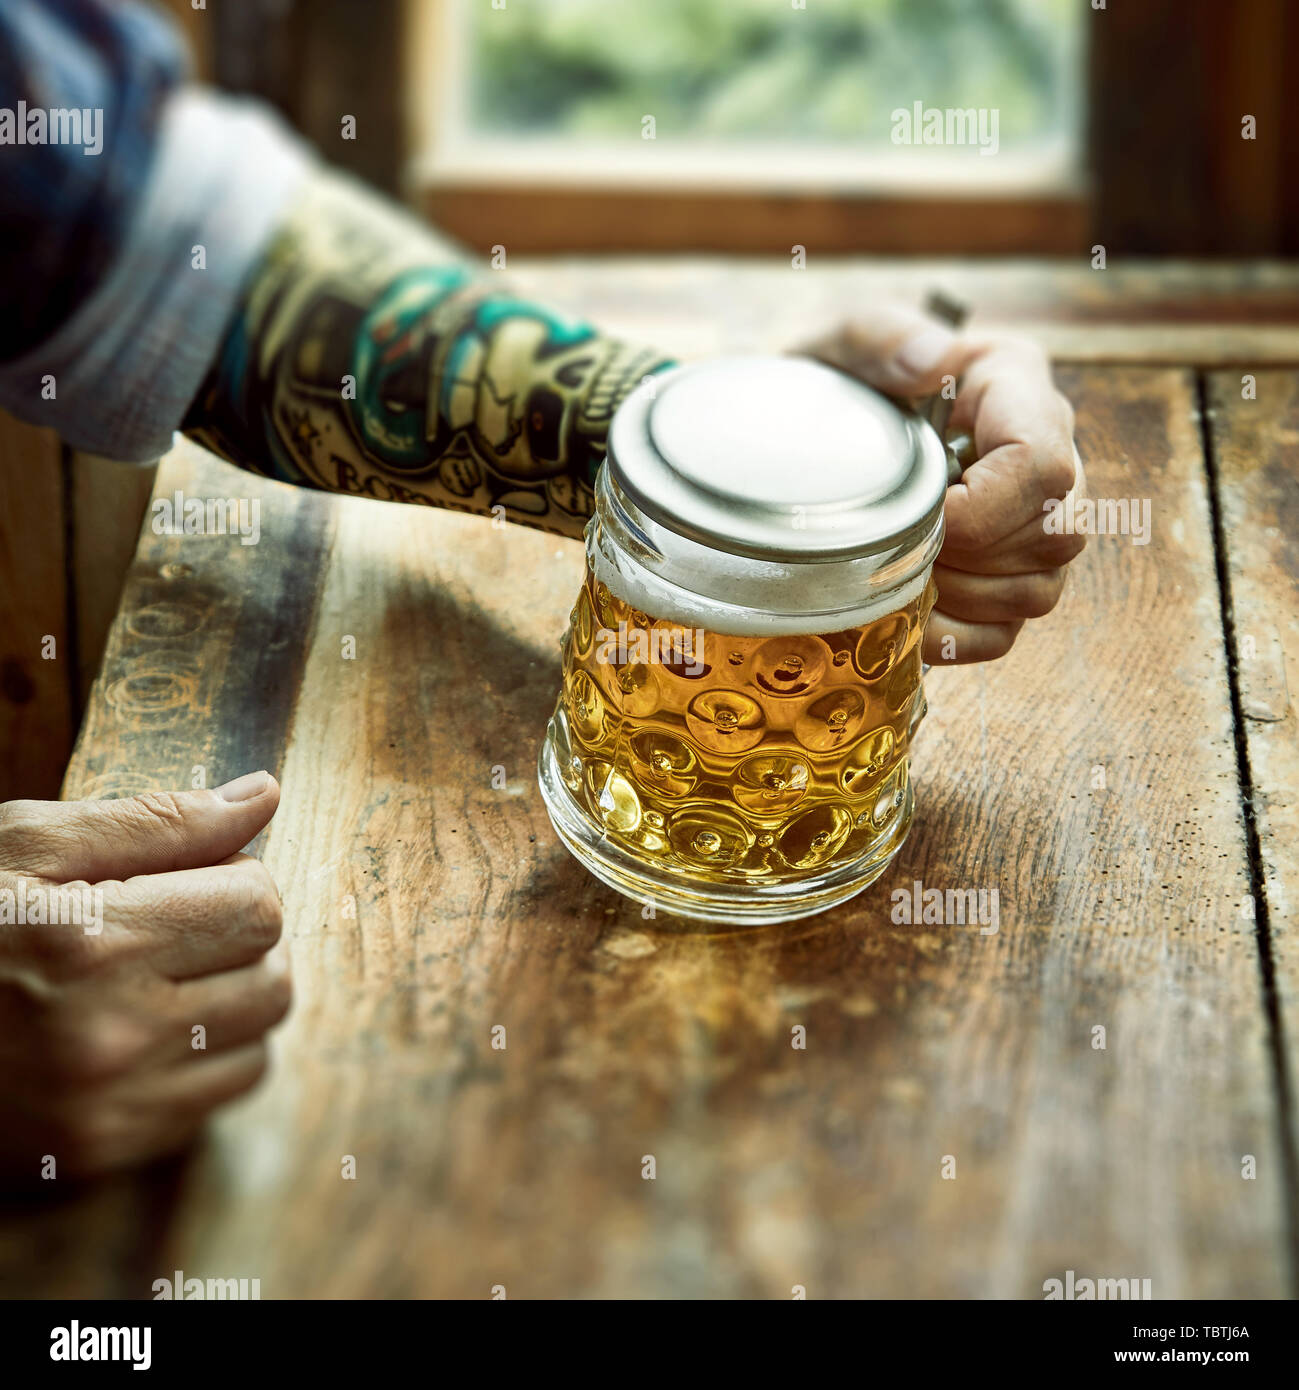 Man With Tattoo On His Arm Seated In A Rustic Tavern With Large Mug Of Beer In A Concept Of Alcoholism Addiction Drunkenness Or Dipsomania Stock Photo Alamy